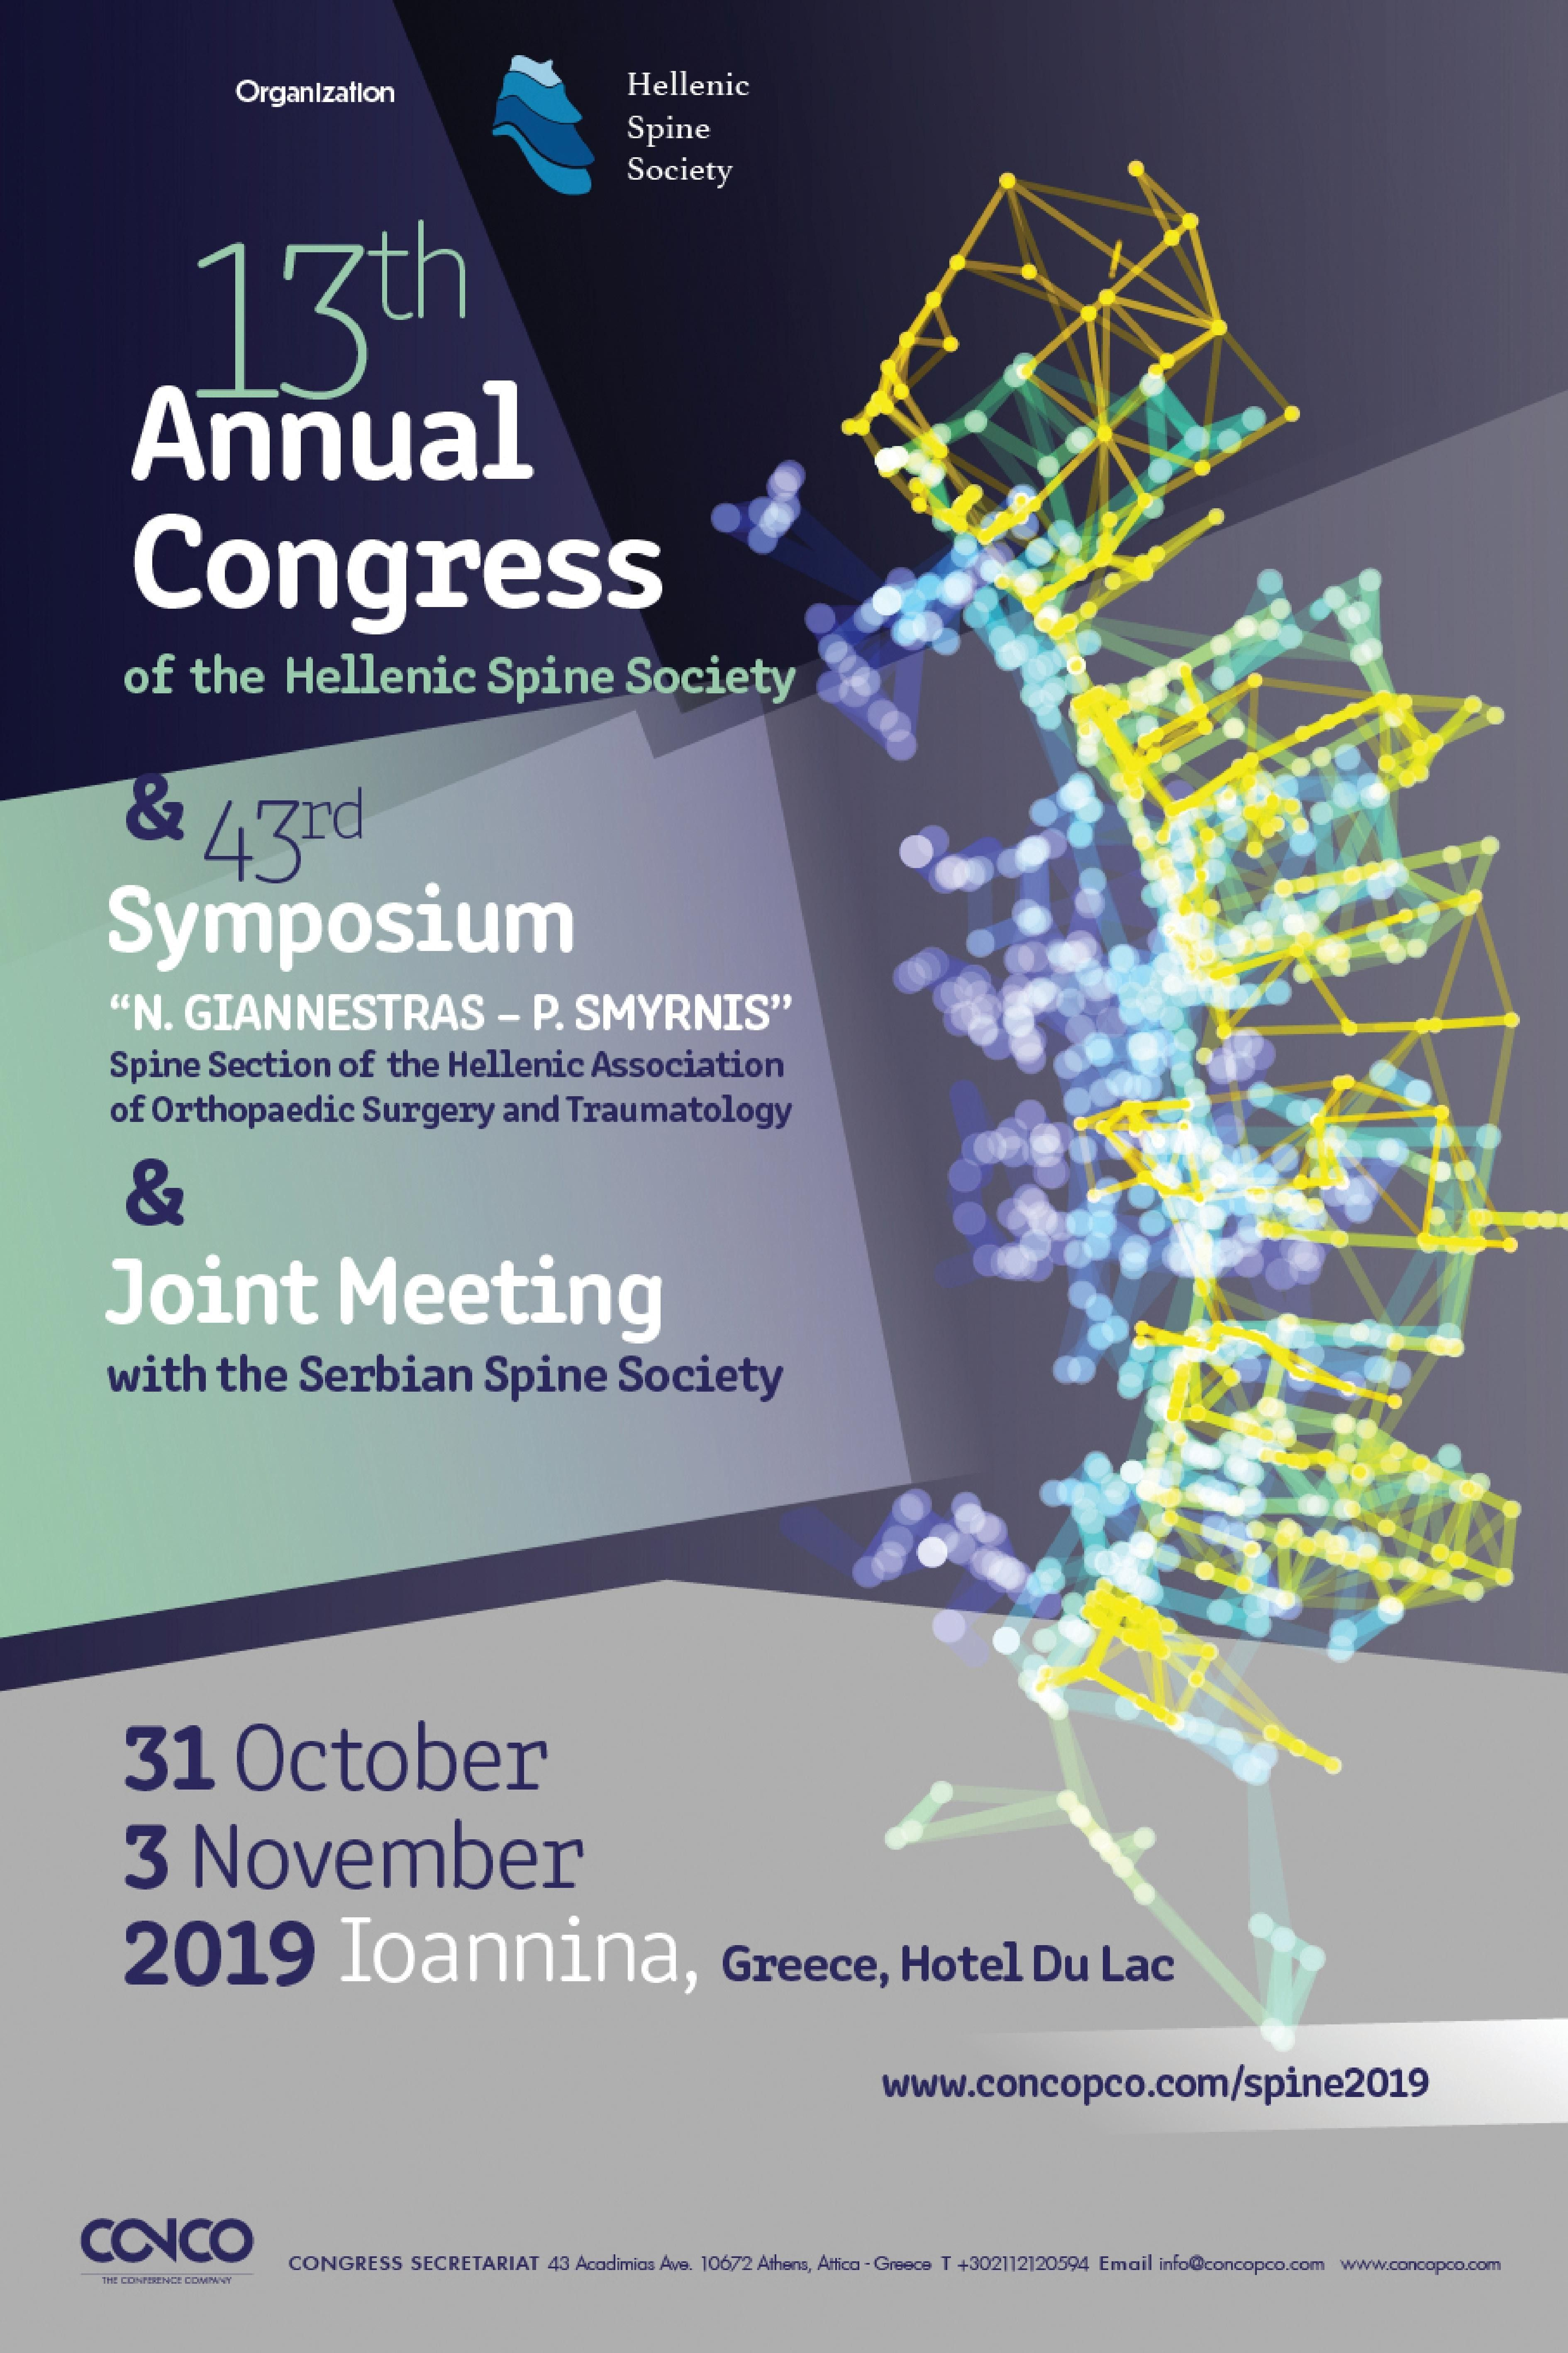 """13th ANNUAL CONGRESS OF THE HELLENIC SPINE SOCIETY & 43rd SYMPOSIUM """"N. GIANNESTRAS - P. SMYRNIS"""" & JOINT MEETING WITH THE SERBIAN SPINE SOCIETY"""